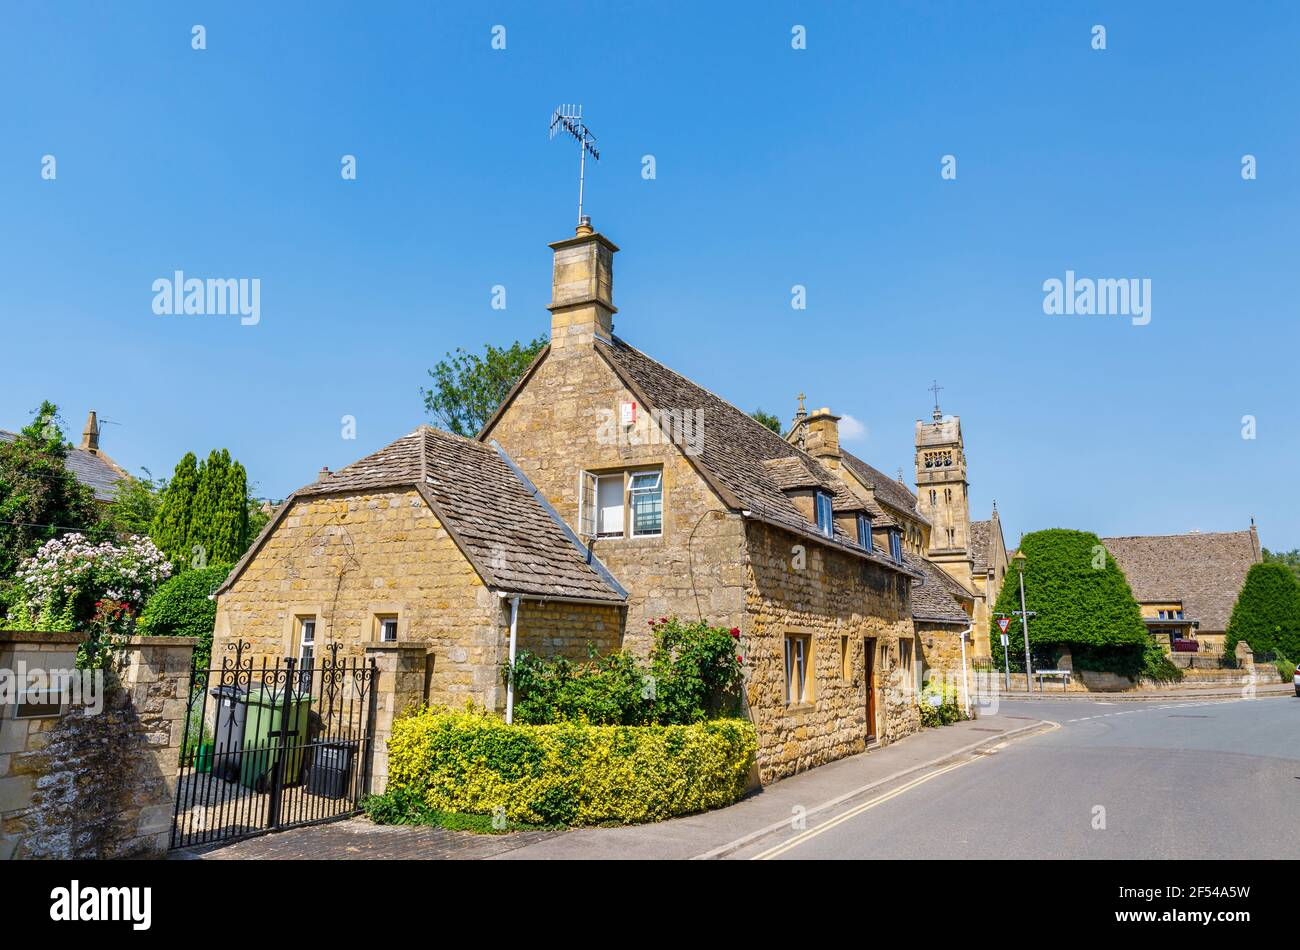 Typical roadside Cotswold stone slate roof houses and St Catharine's Church in Chipping Campden, a small market town in the Cotswolds, Gloucestershire Stock Photo